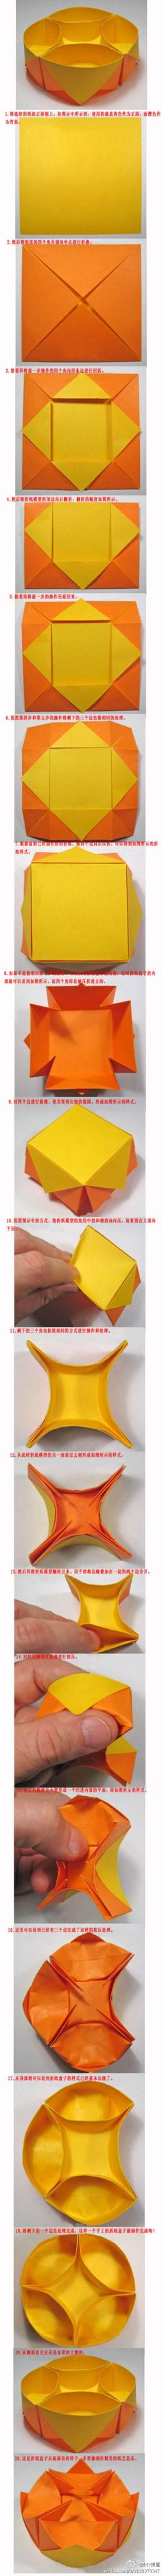 best origami images on pinterest